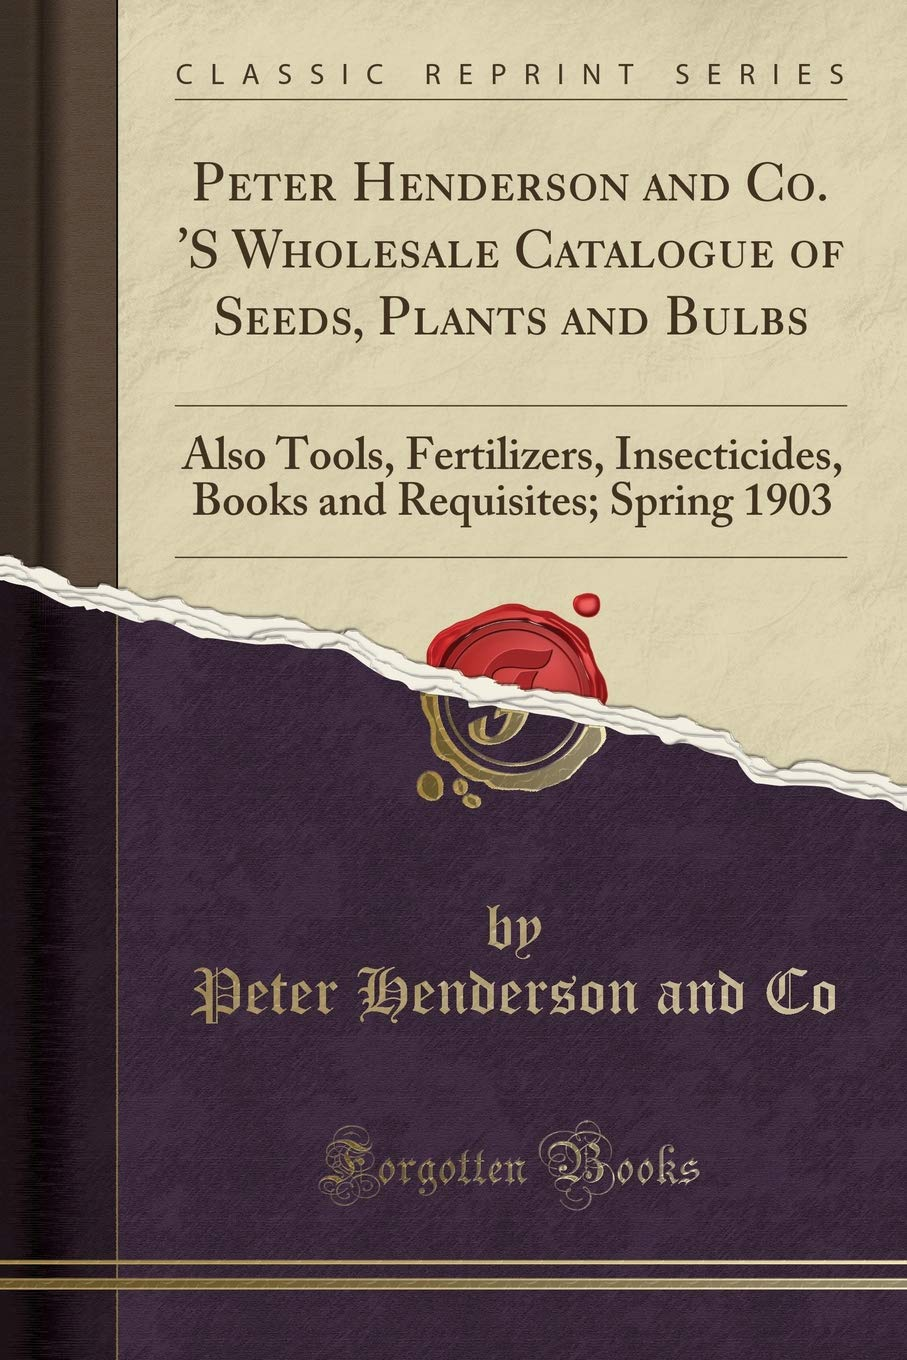 Download Peter Henderson and Co. 'S Wholesale Catalogue of Seeds, Plants and Bulbs: Also Tools, Fertilizers, Insecticides, Books and Requisites; Spring 1903 (Classic Reprint) ebook